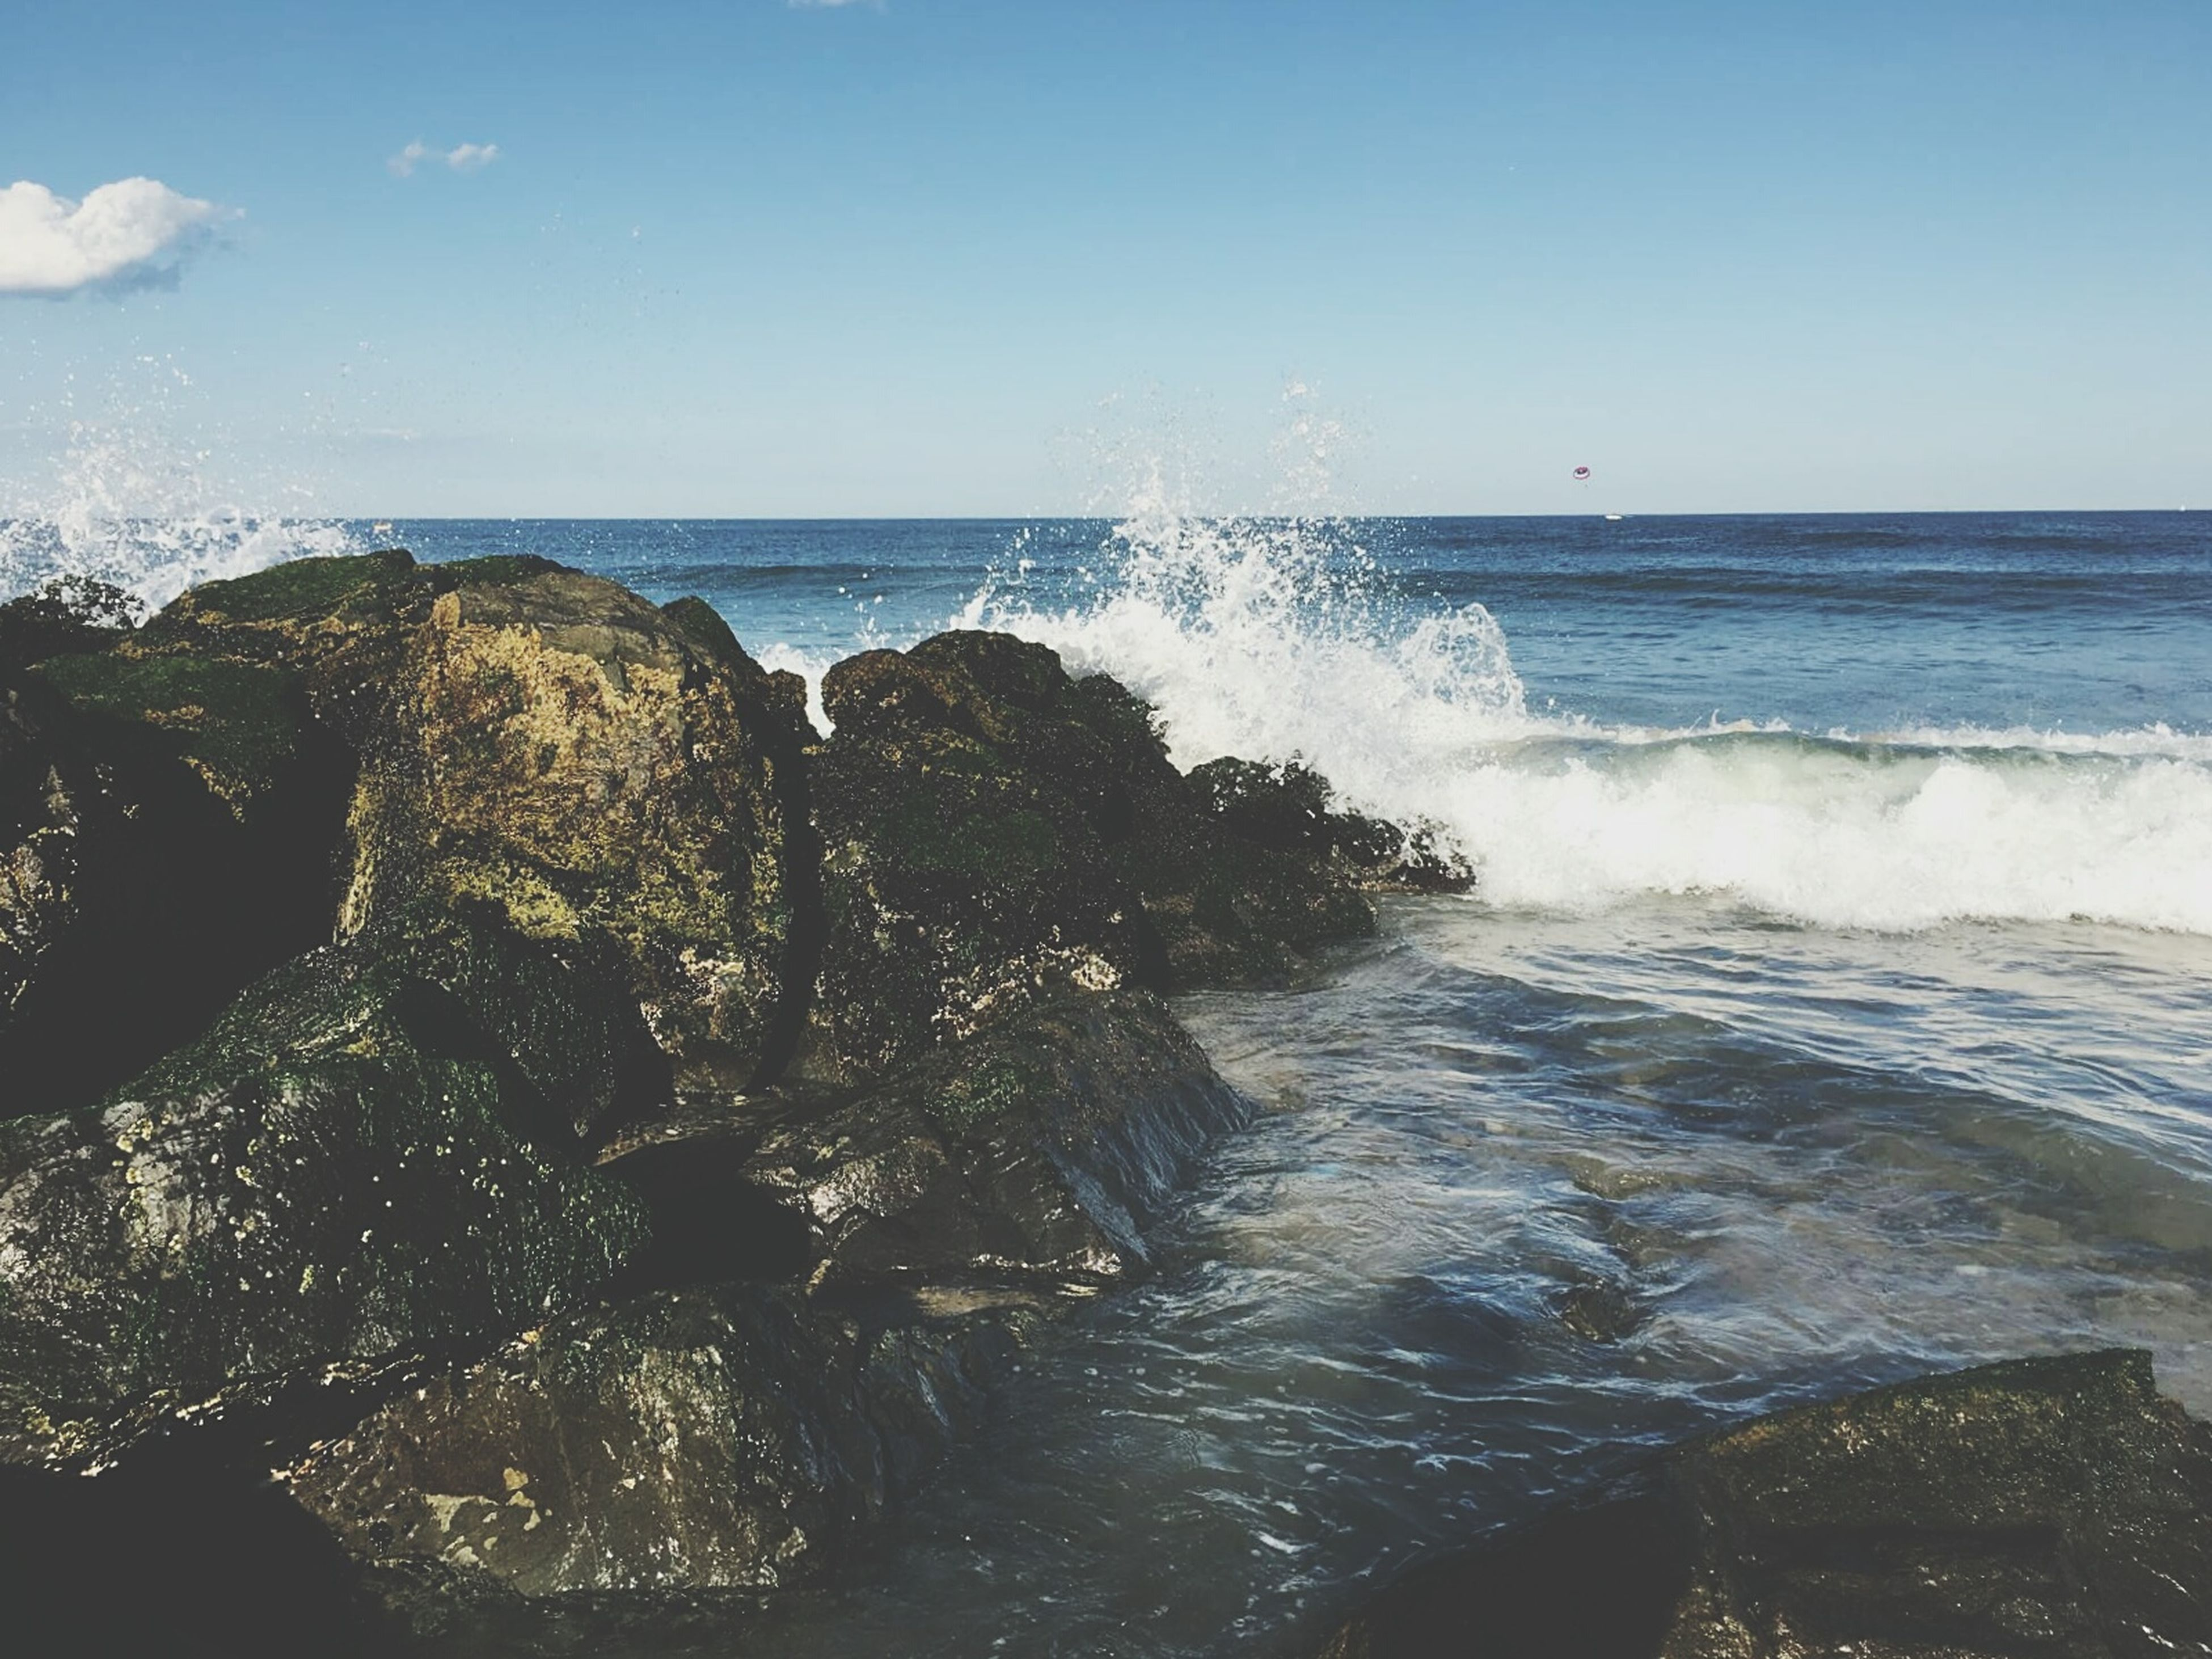 sea, water, horizon over water, wave, motion, splashing, power in nature, scenics, beauty in nature, surf, rock - object, nature, rock formation, sky, majestic, non-urban scene, tranquil scene, tranquility, outdoors, geology, seascape, rocky, rock, no people, coastal feature, remote